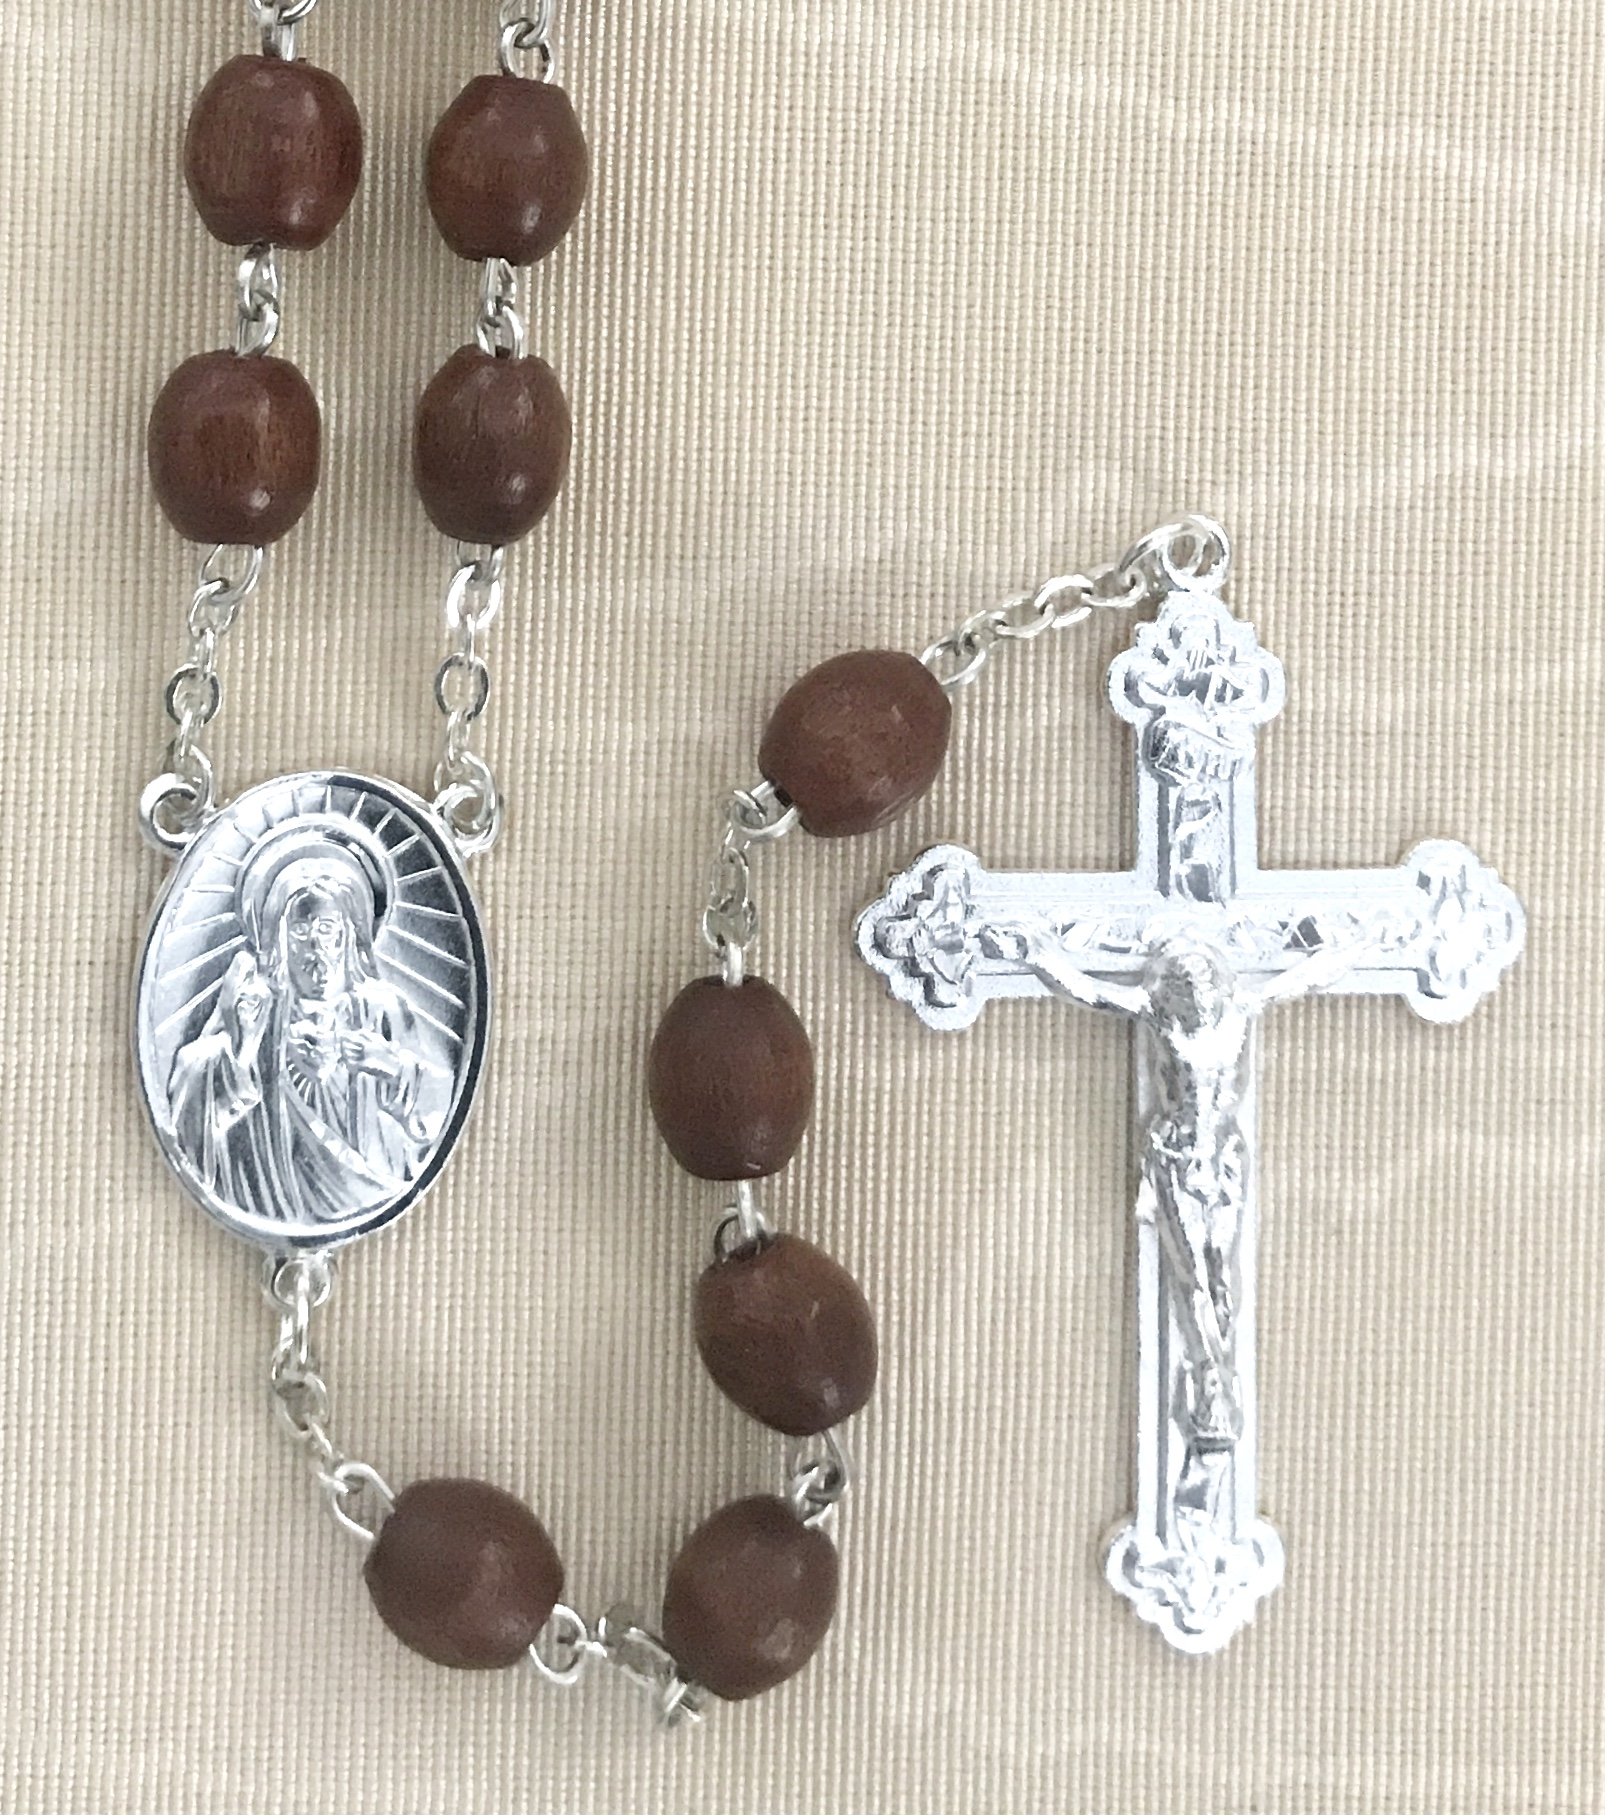 9x6mm BROWN WOOD ROSARY WITH STERLING SILVER PLATED CRUCIFIX AND CENTER GIFT BOXED